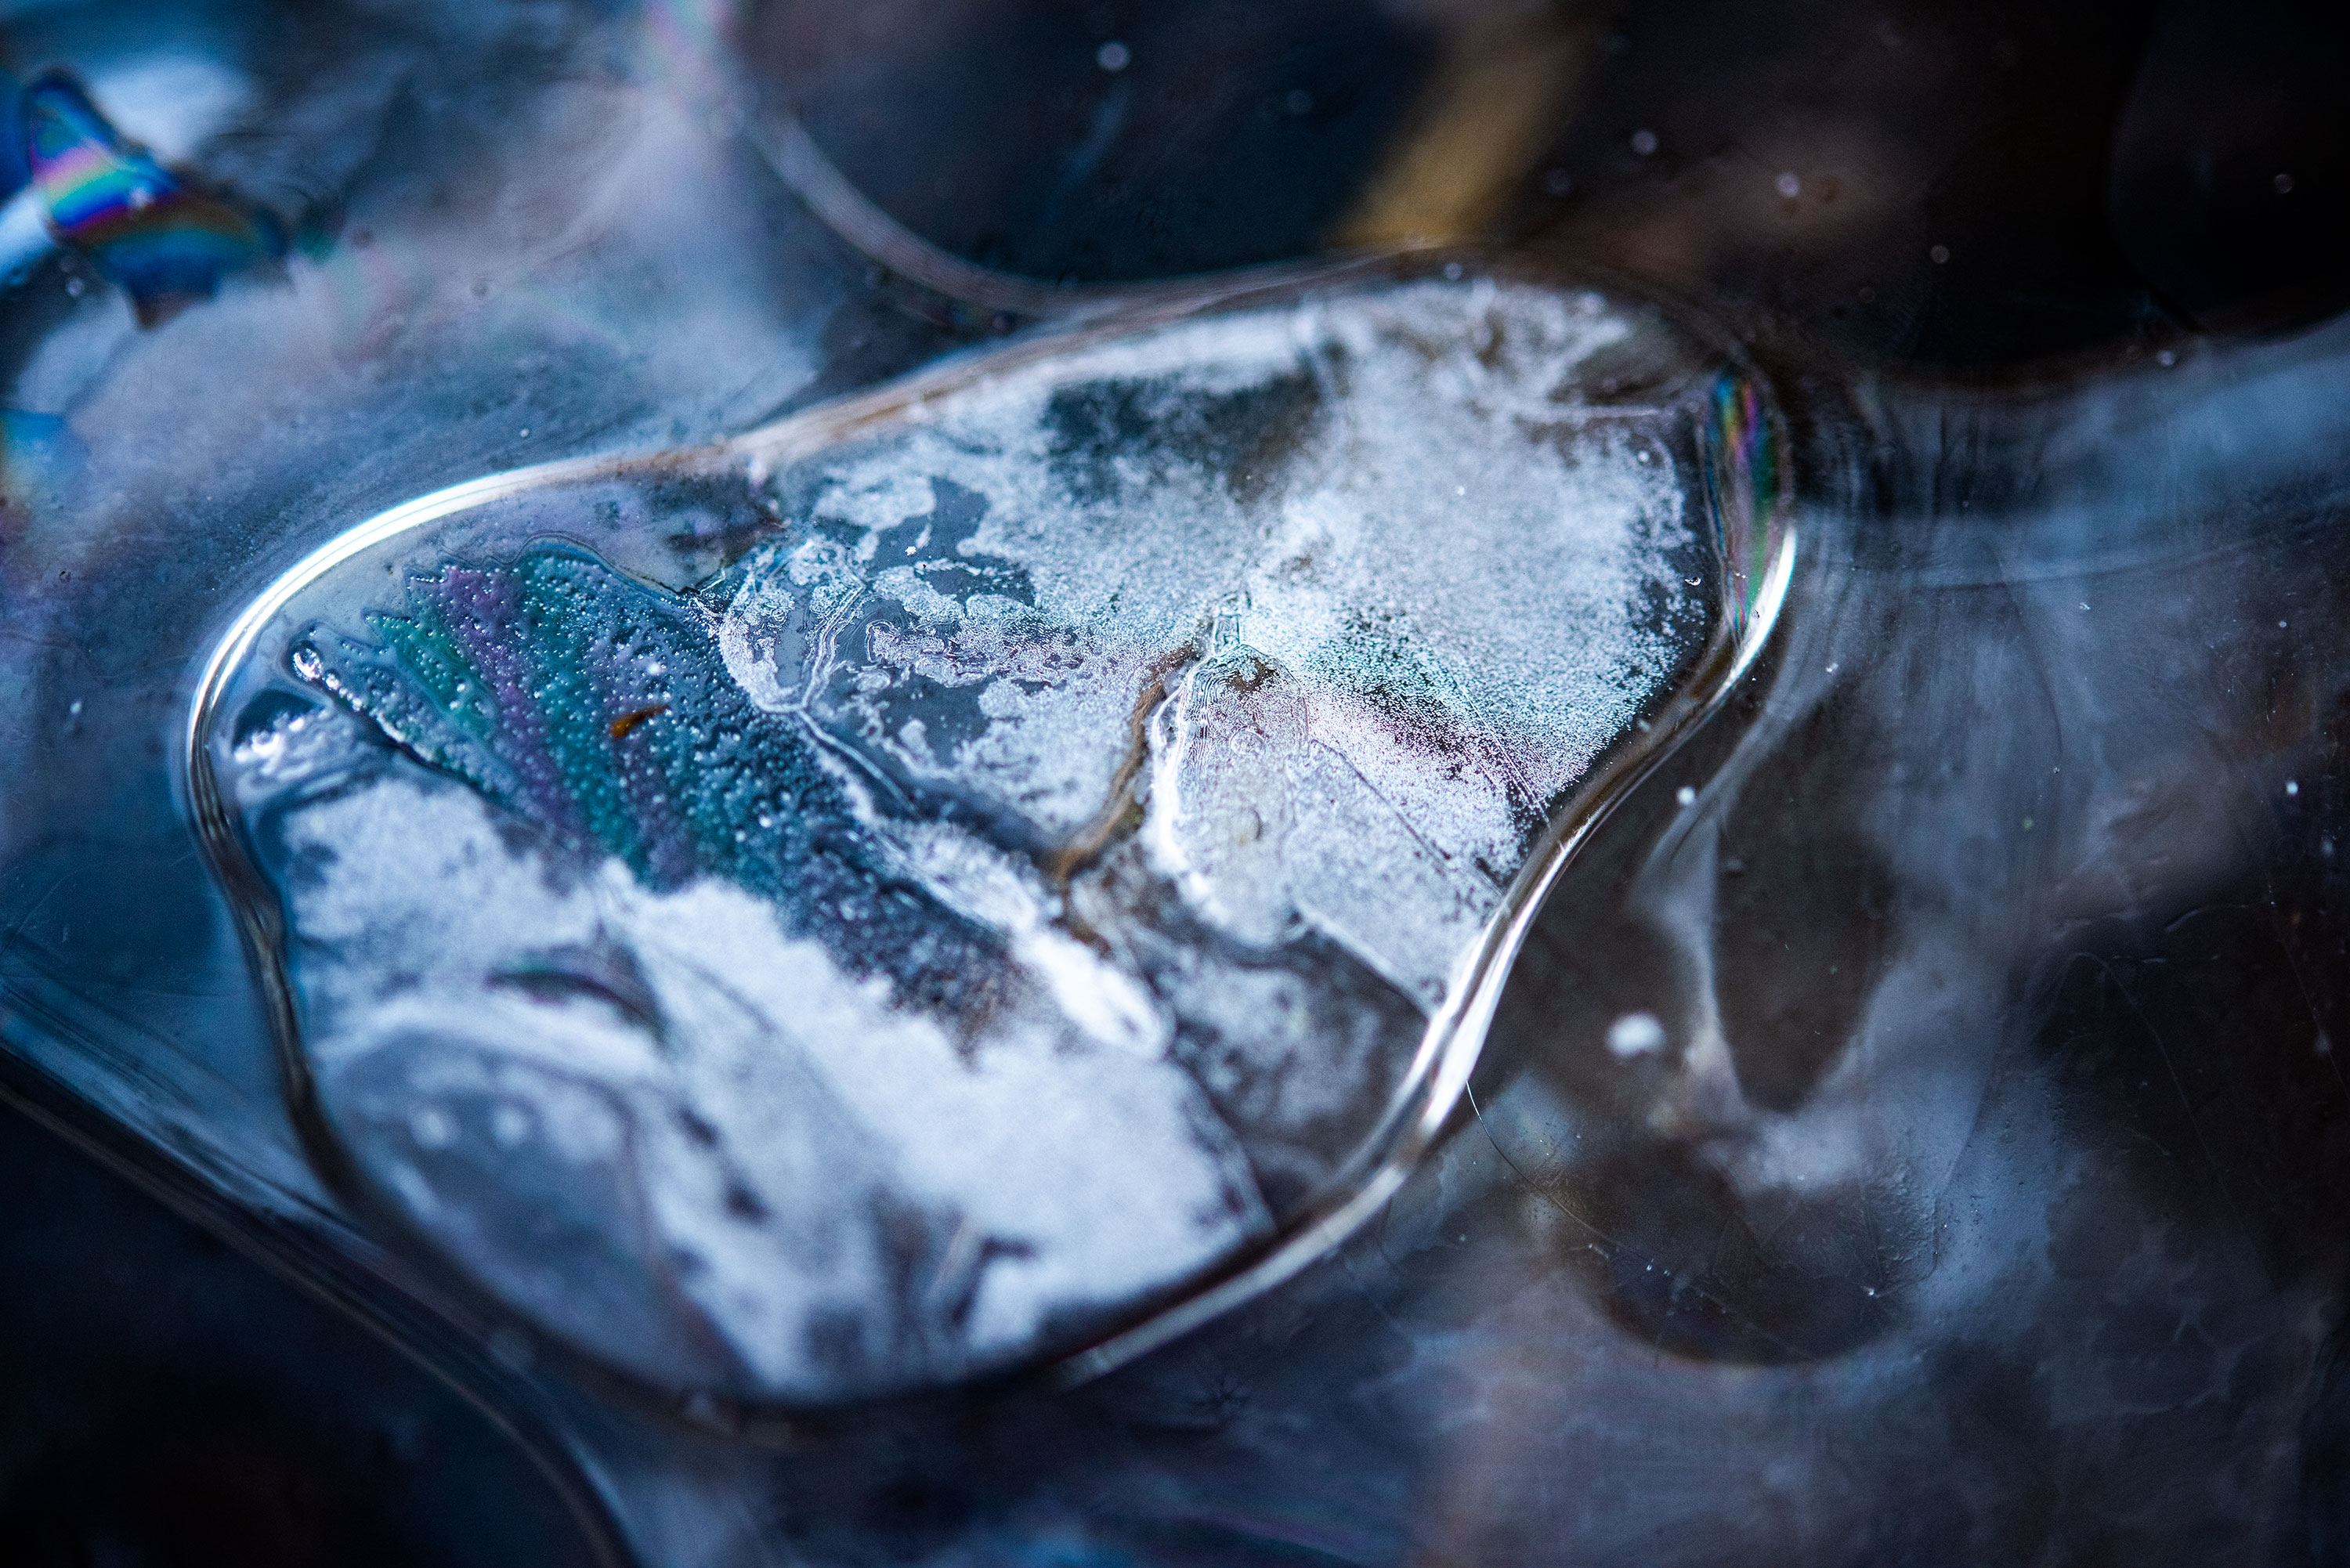 Abstract and close up photography of a frozen pond, located in Lausanne, Switzerland. Image by Jennifer Esseiva.